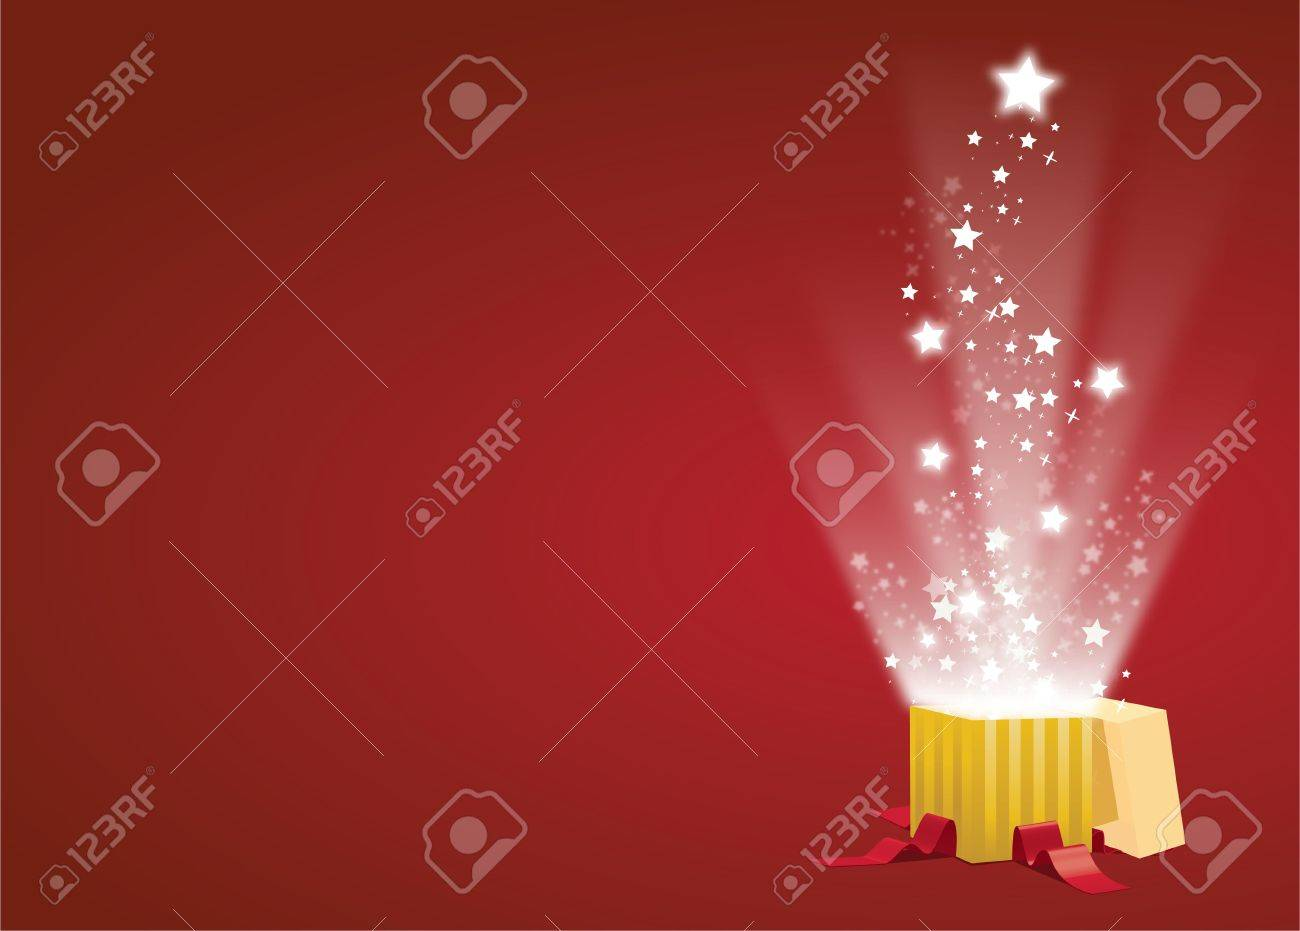 Vector Christmas Gift Opening with Surprise Stock Vector - 11218830